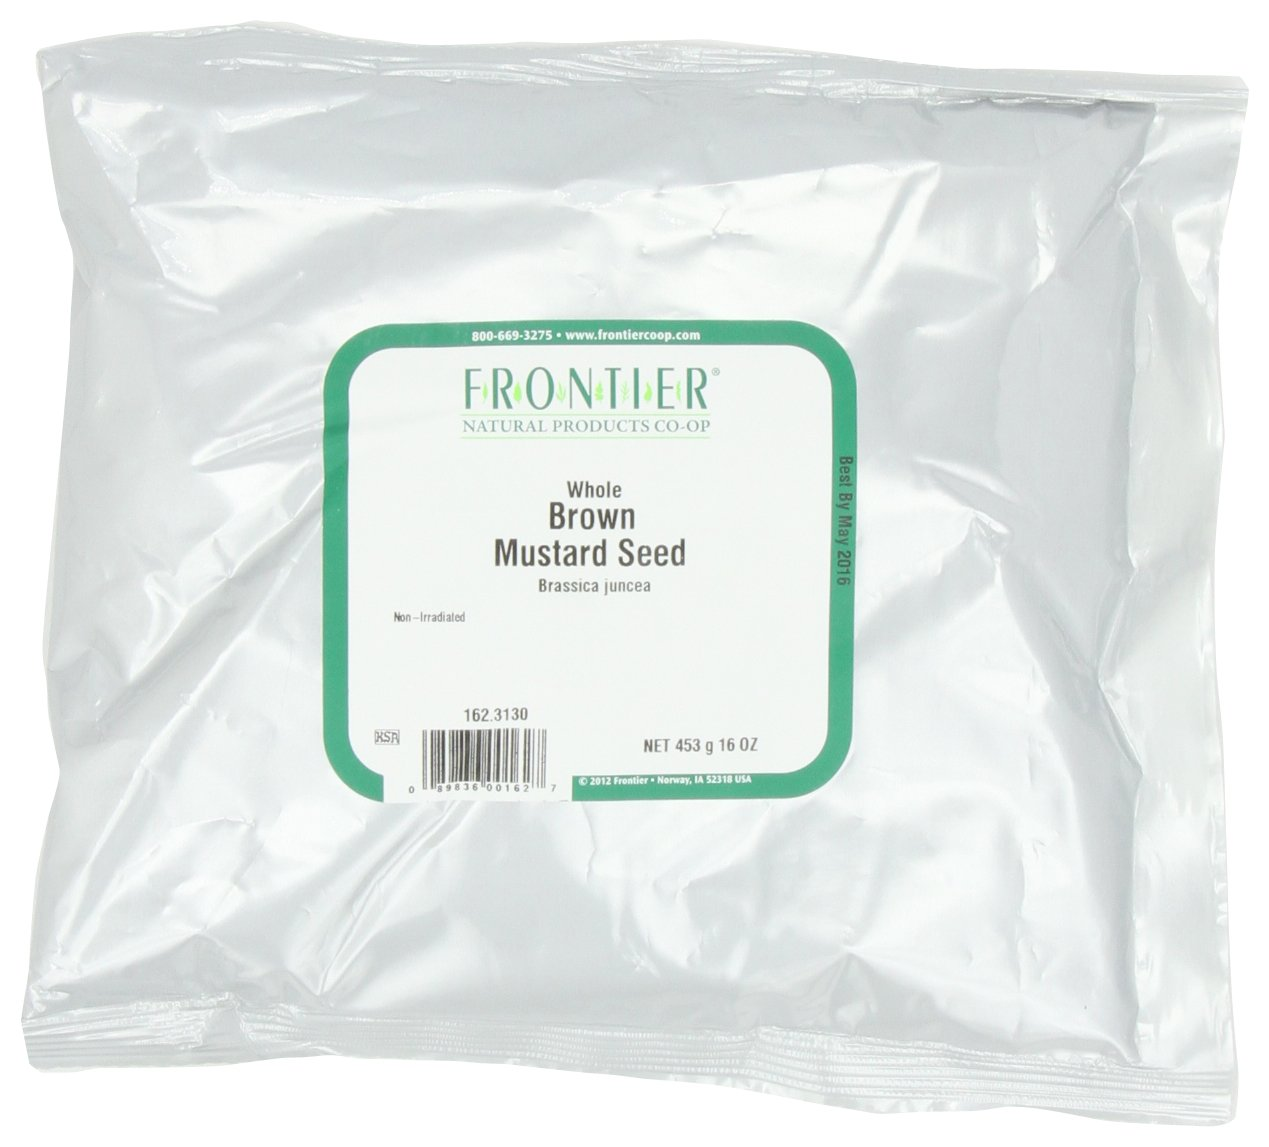 Frontier Mustard Seed, Brown Whole, 16 Ounce Bags (Pack of 3)